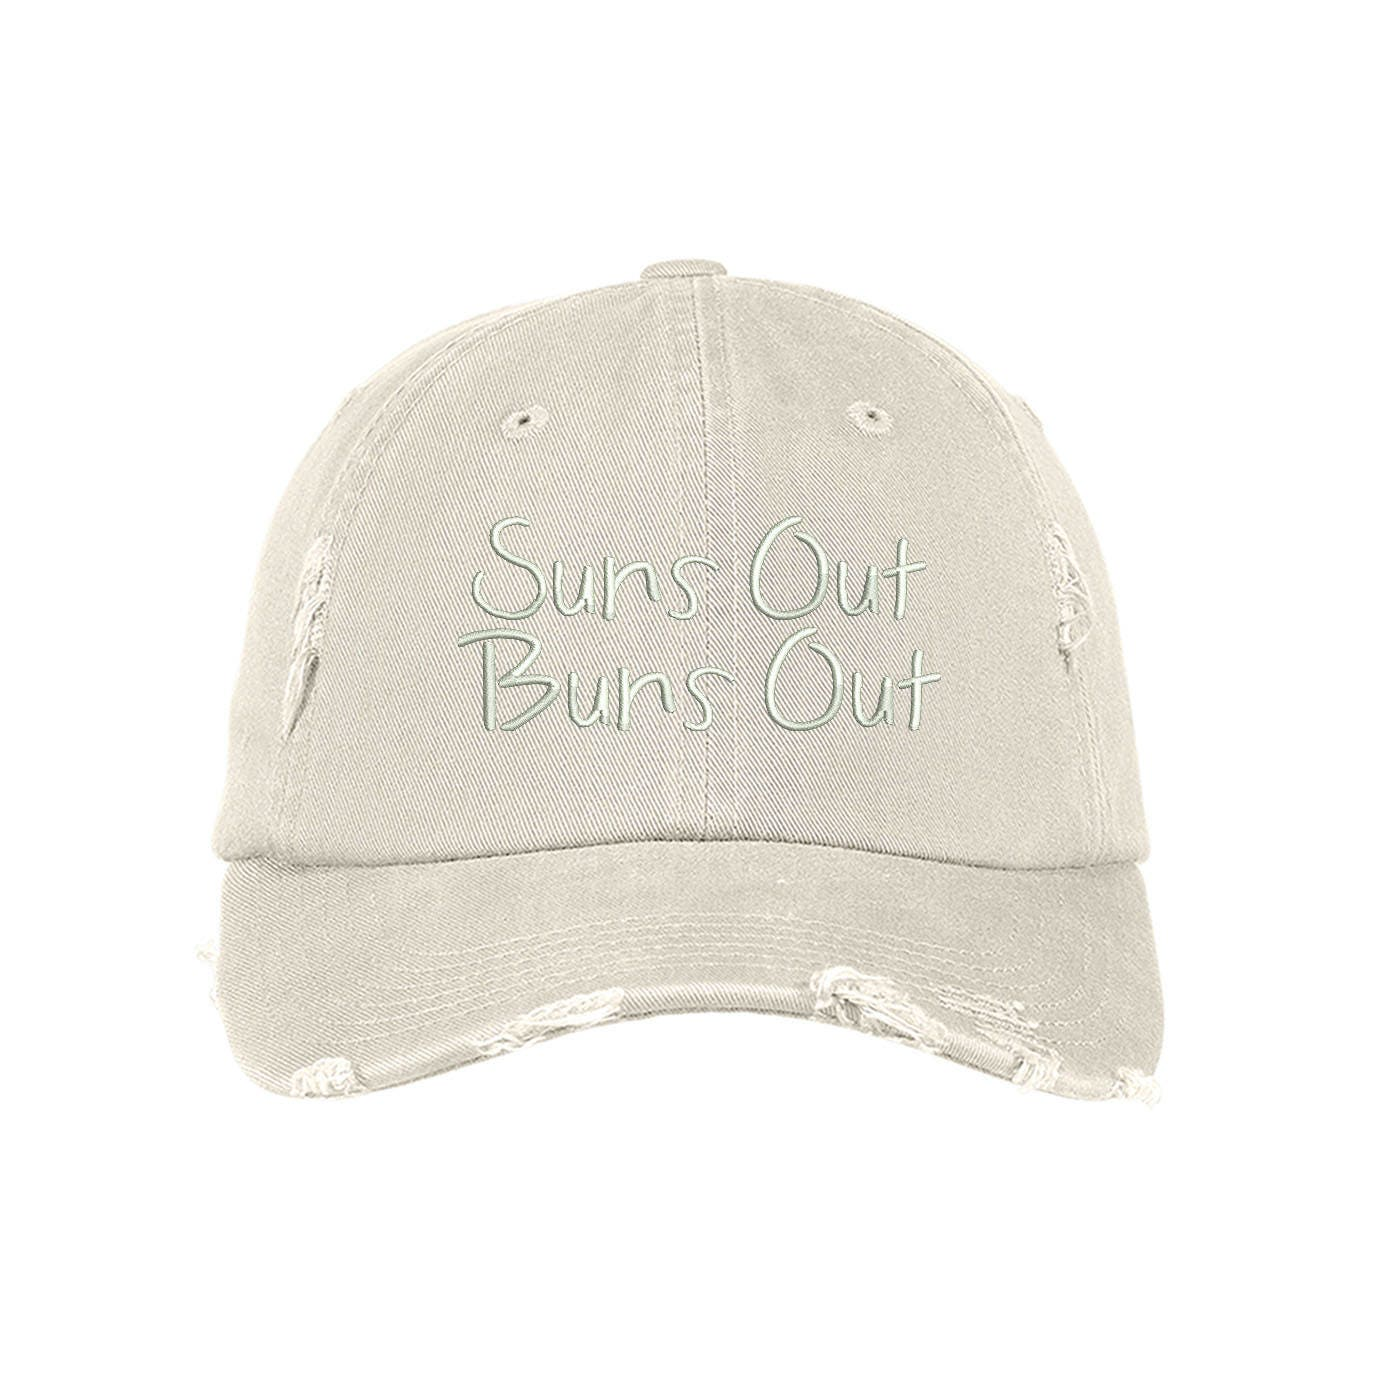 952cf57caf6 Suns OUT BUNS OUT Distressed Dad Hat